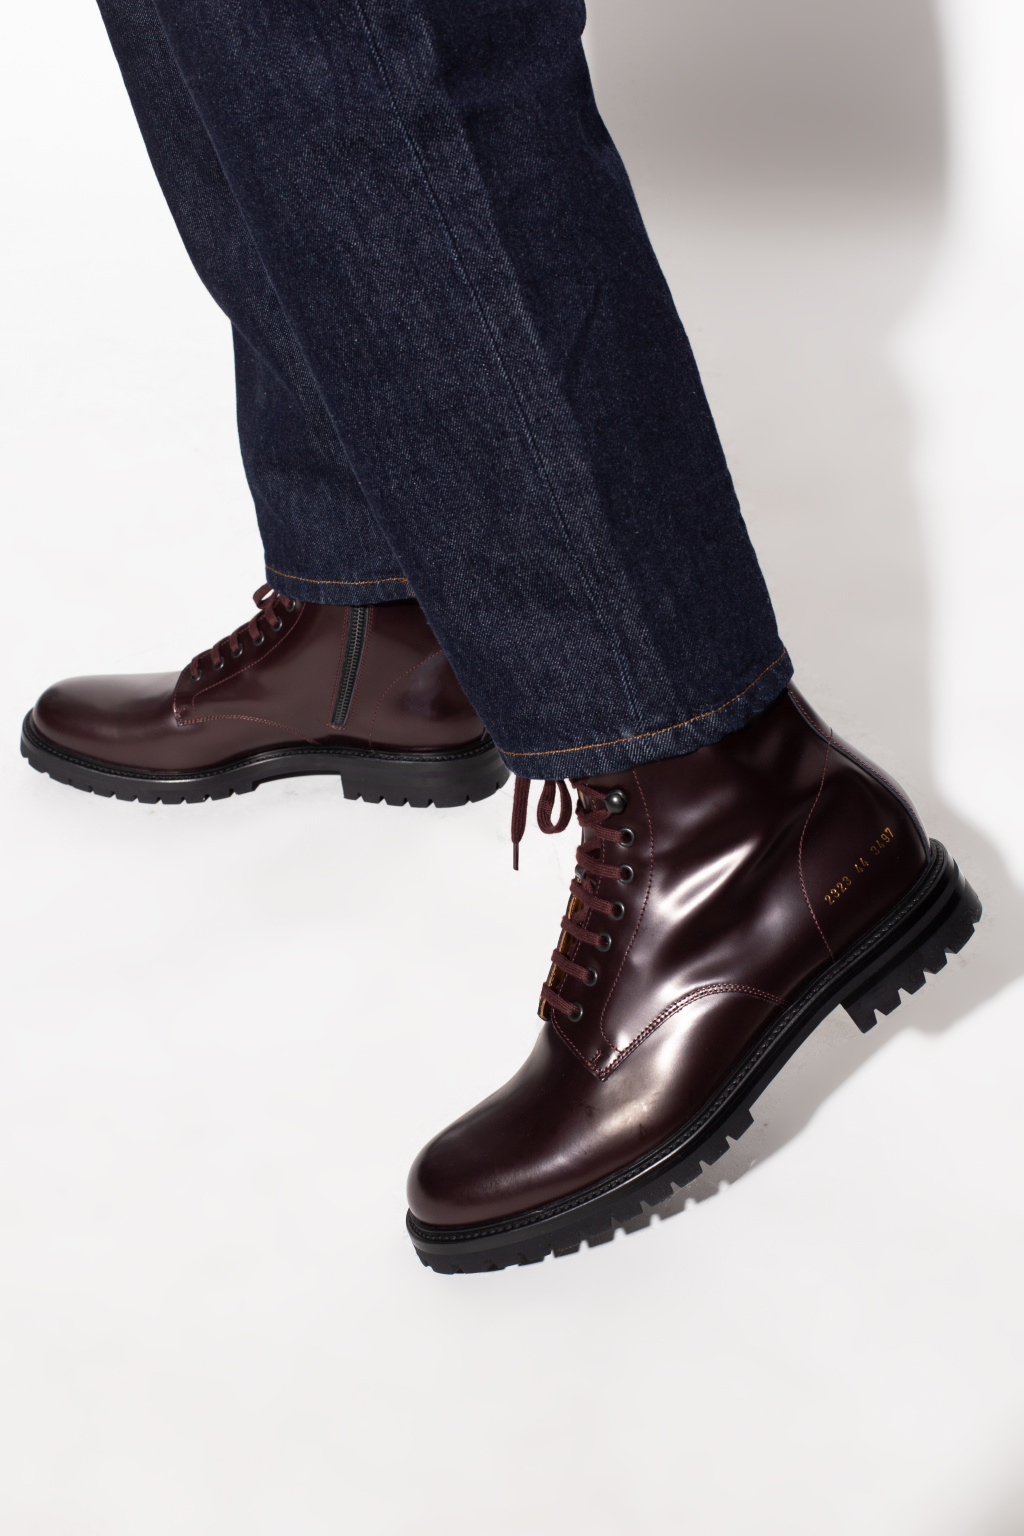 Common Projects 'Combat' ankle boots